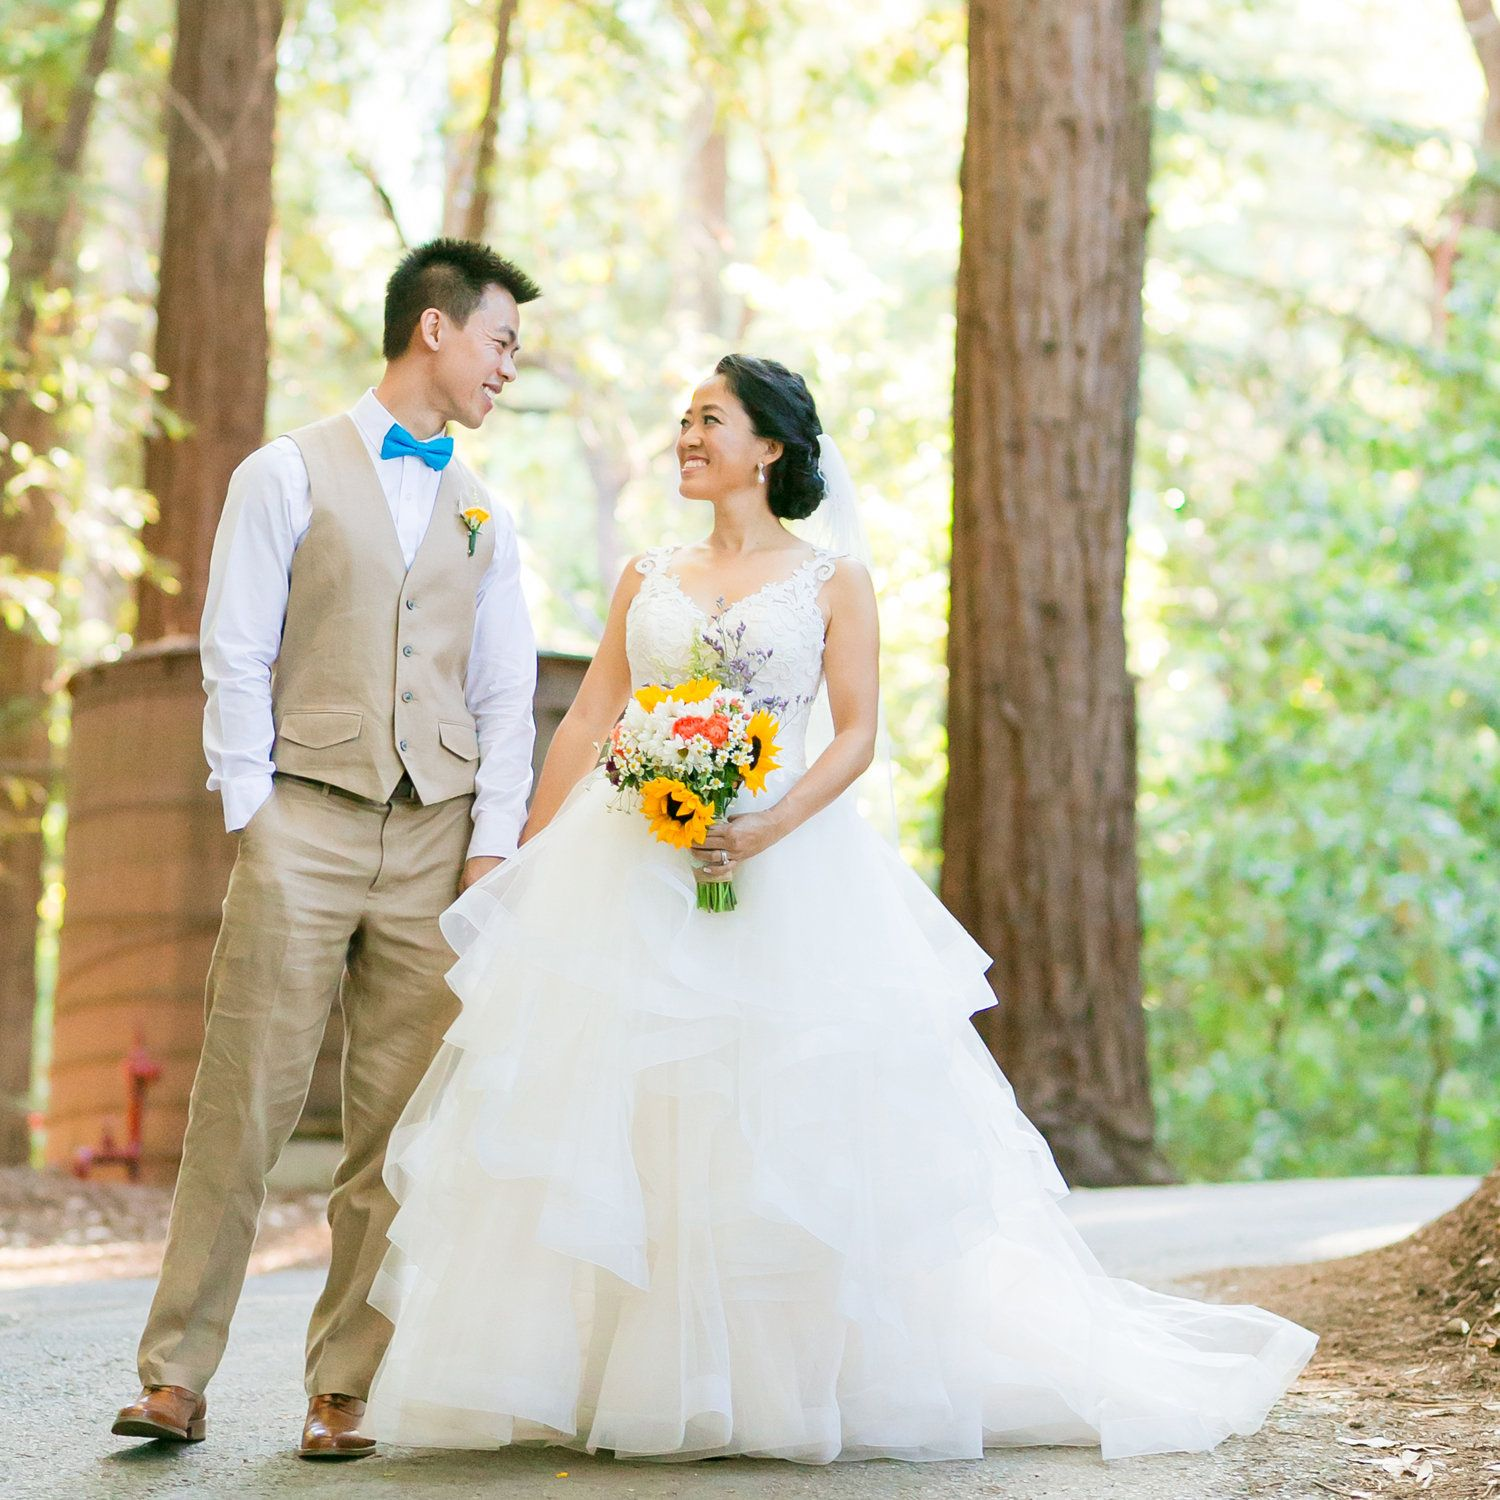 Design your own wedding dress cheap  A woodland wedding with colorful touches and a CasablancaCustomized